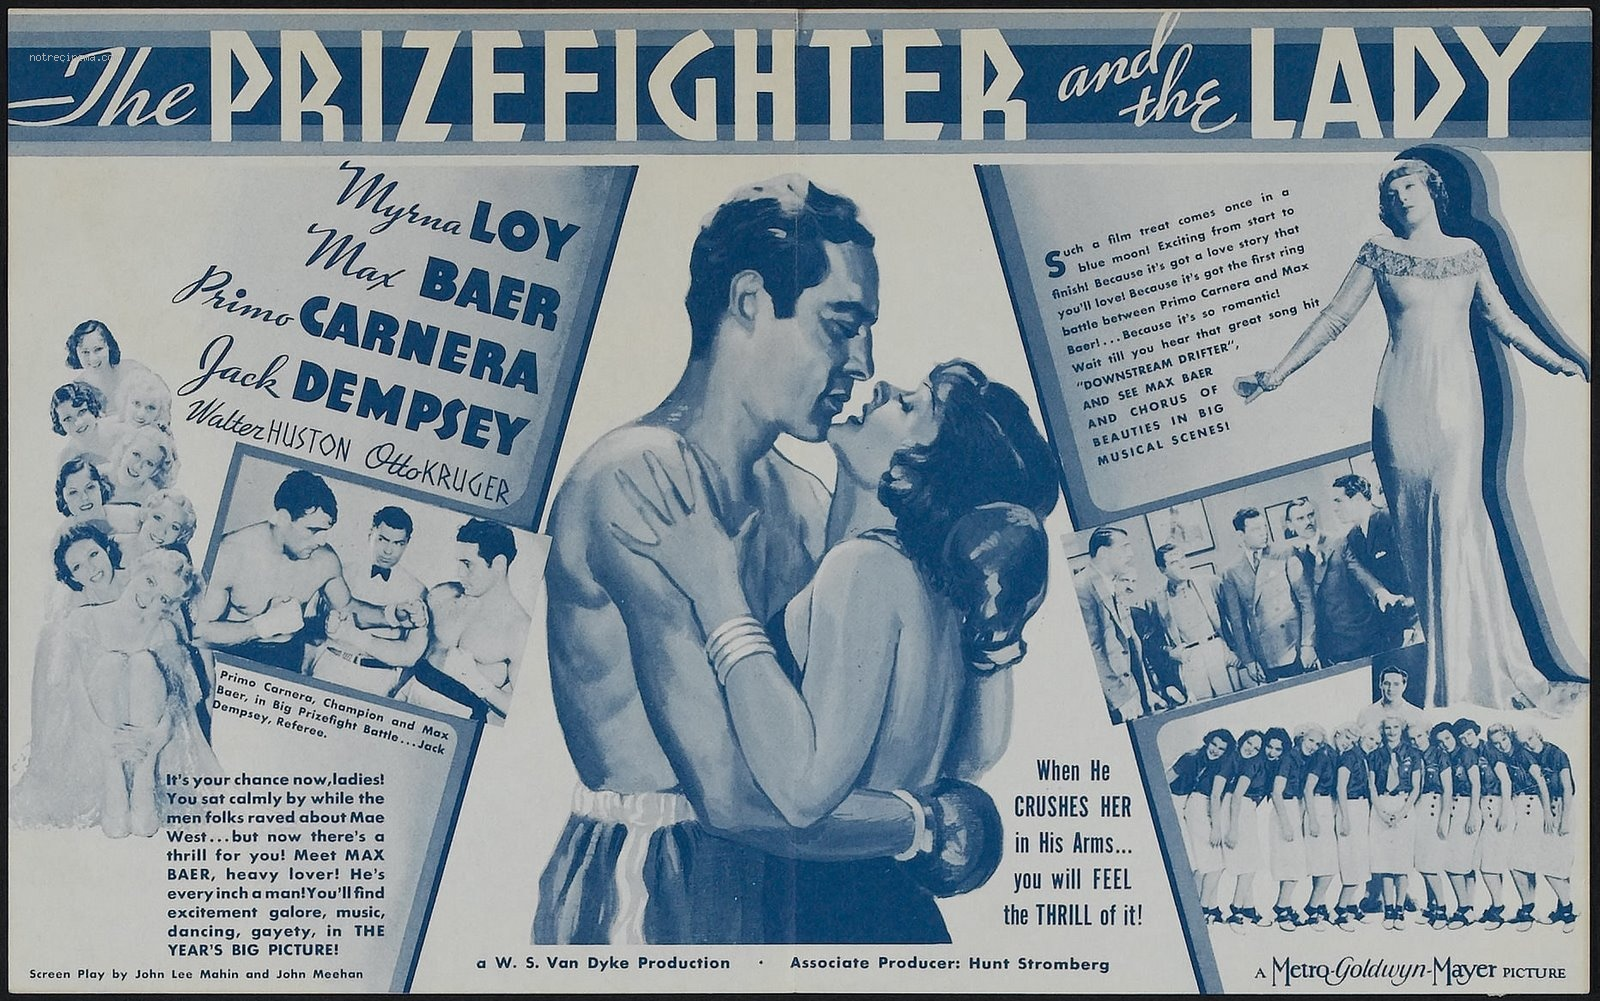 WebThe Prizefighter and the Lady Film Poster